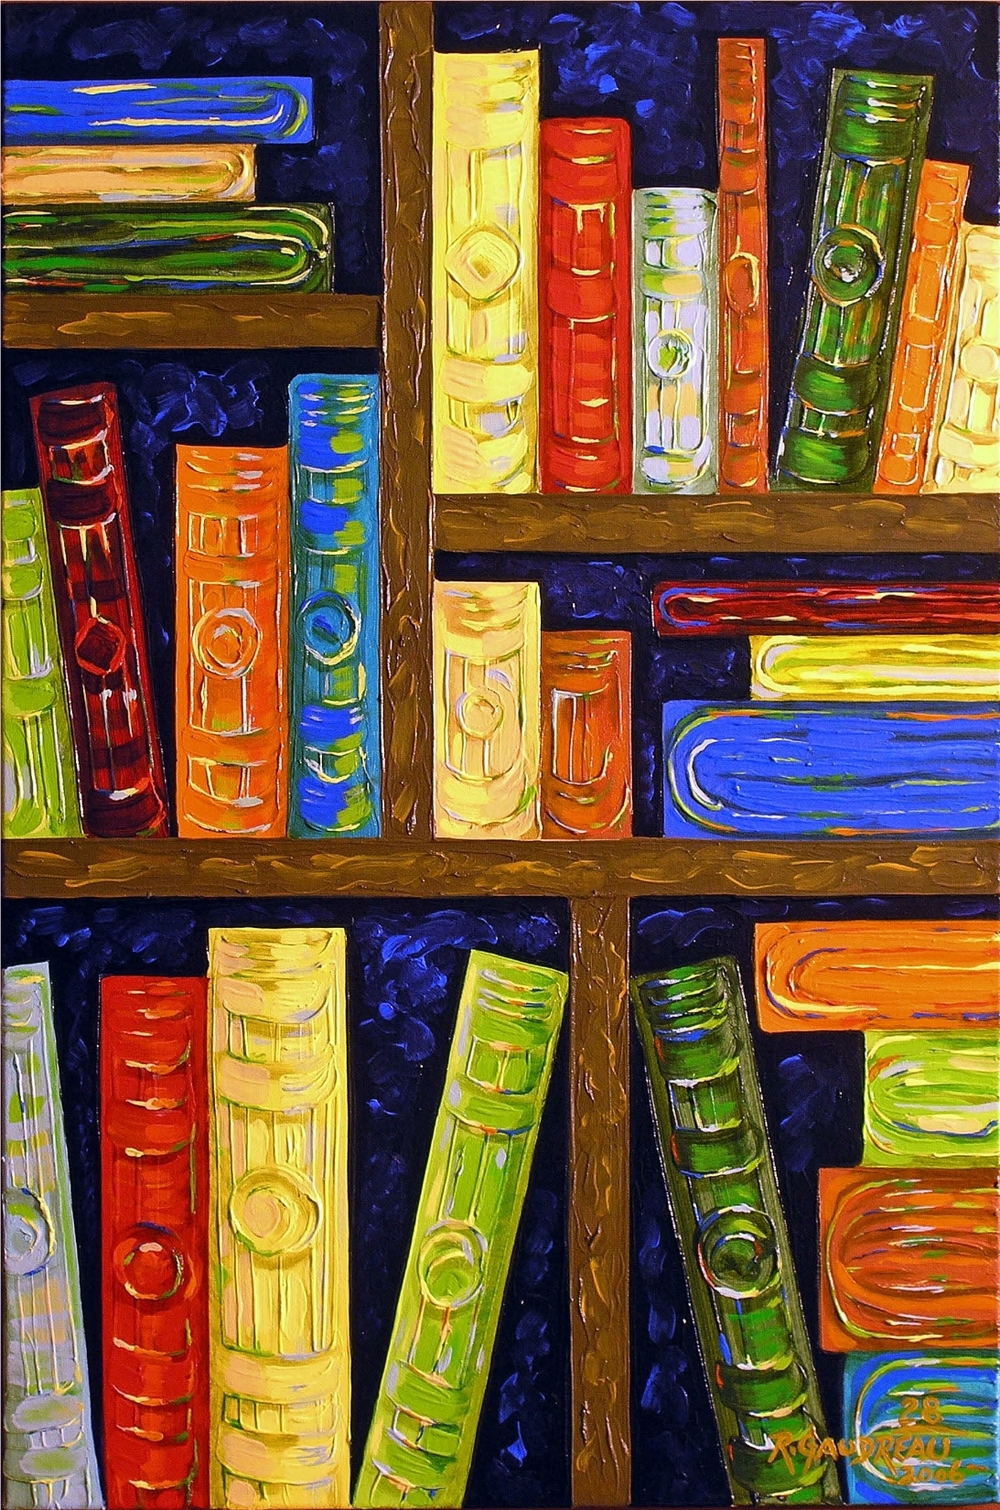 28  Books 2006 oil on canvas 36 x 24 inches